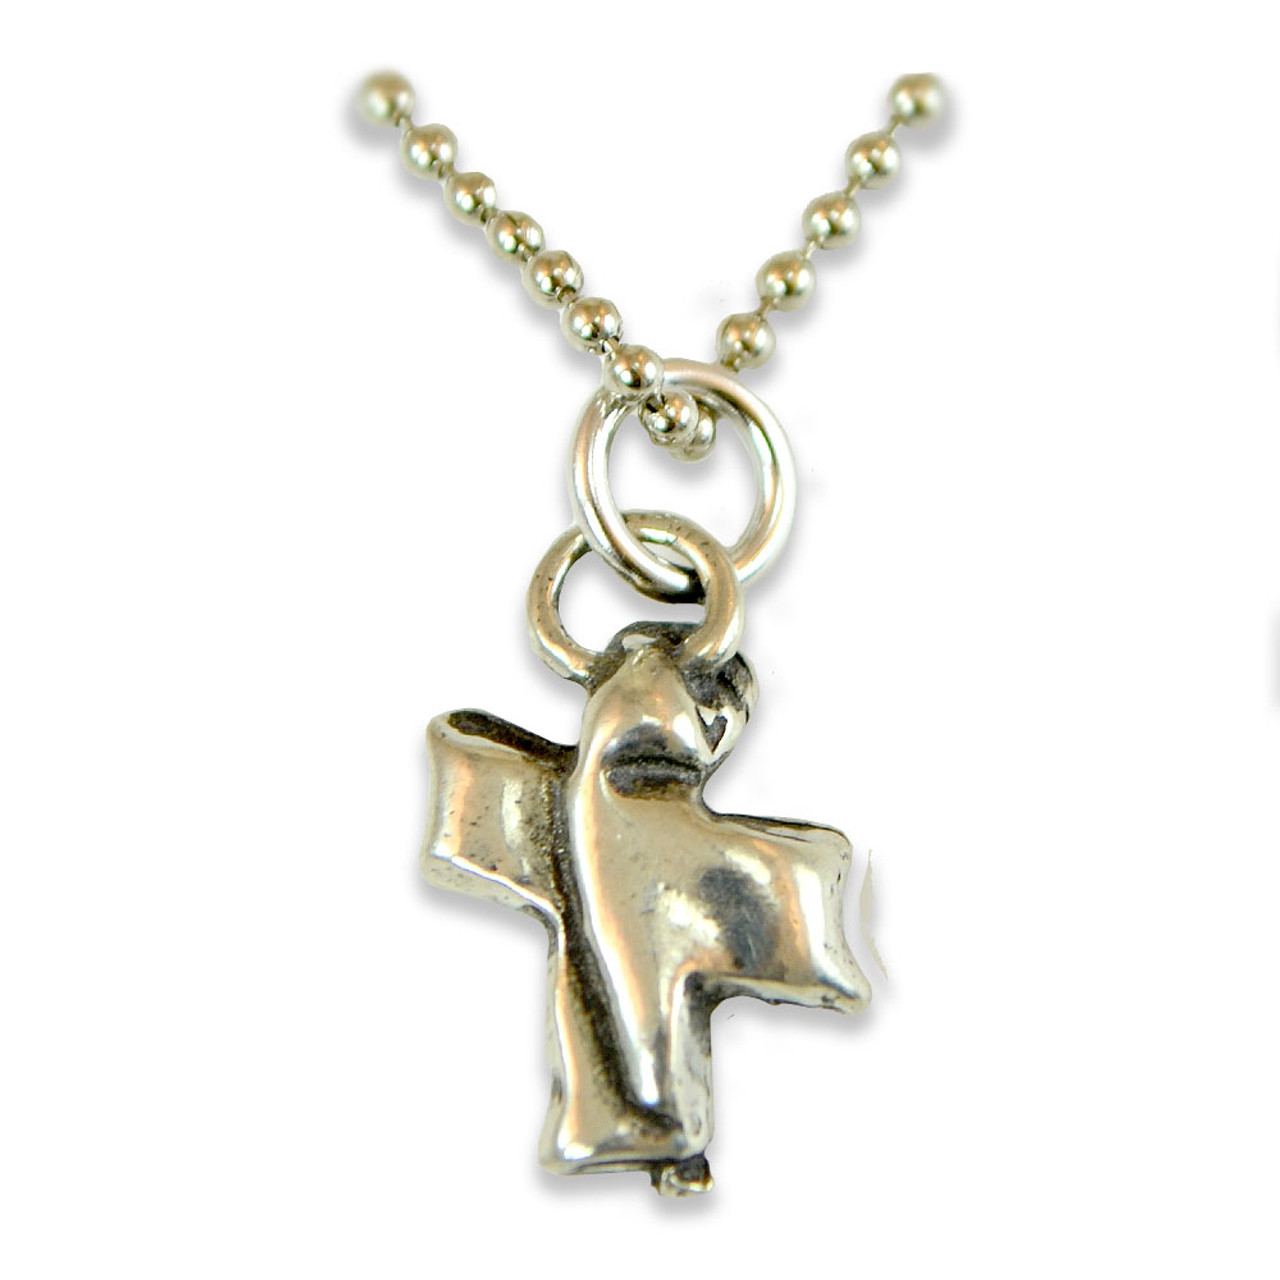 Sacraments Confirmation Cross Pewter